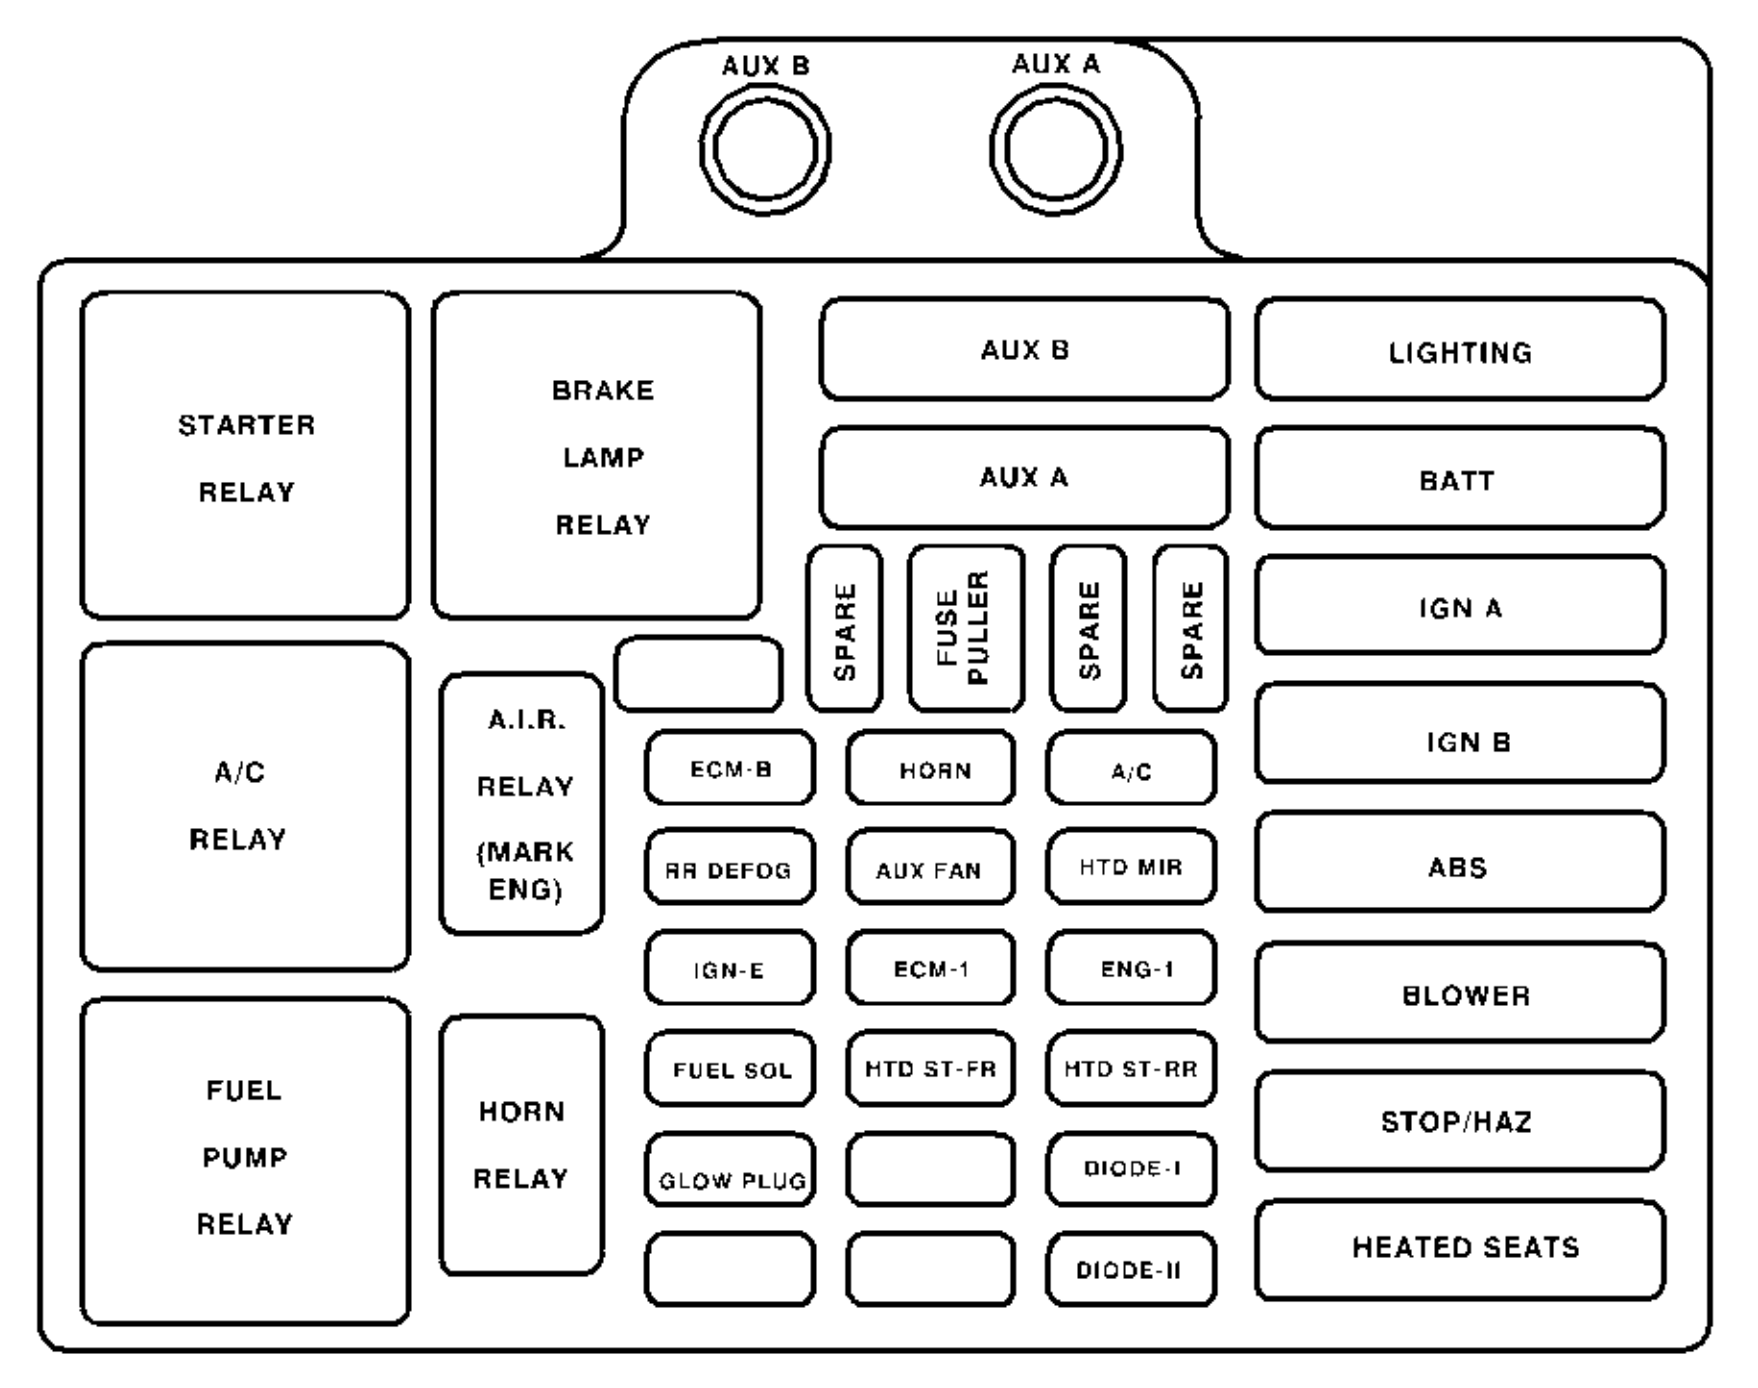 With 1999 Chevy S10 Fuse Box Diagram On 1999 Chevy S10